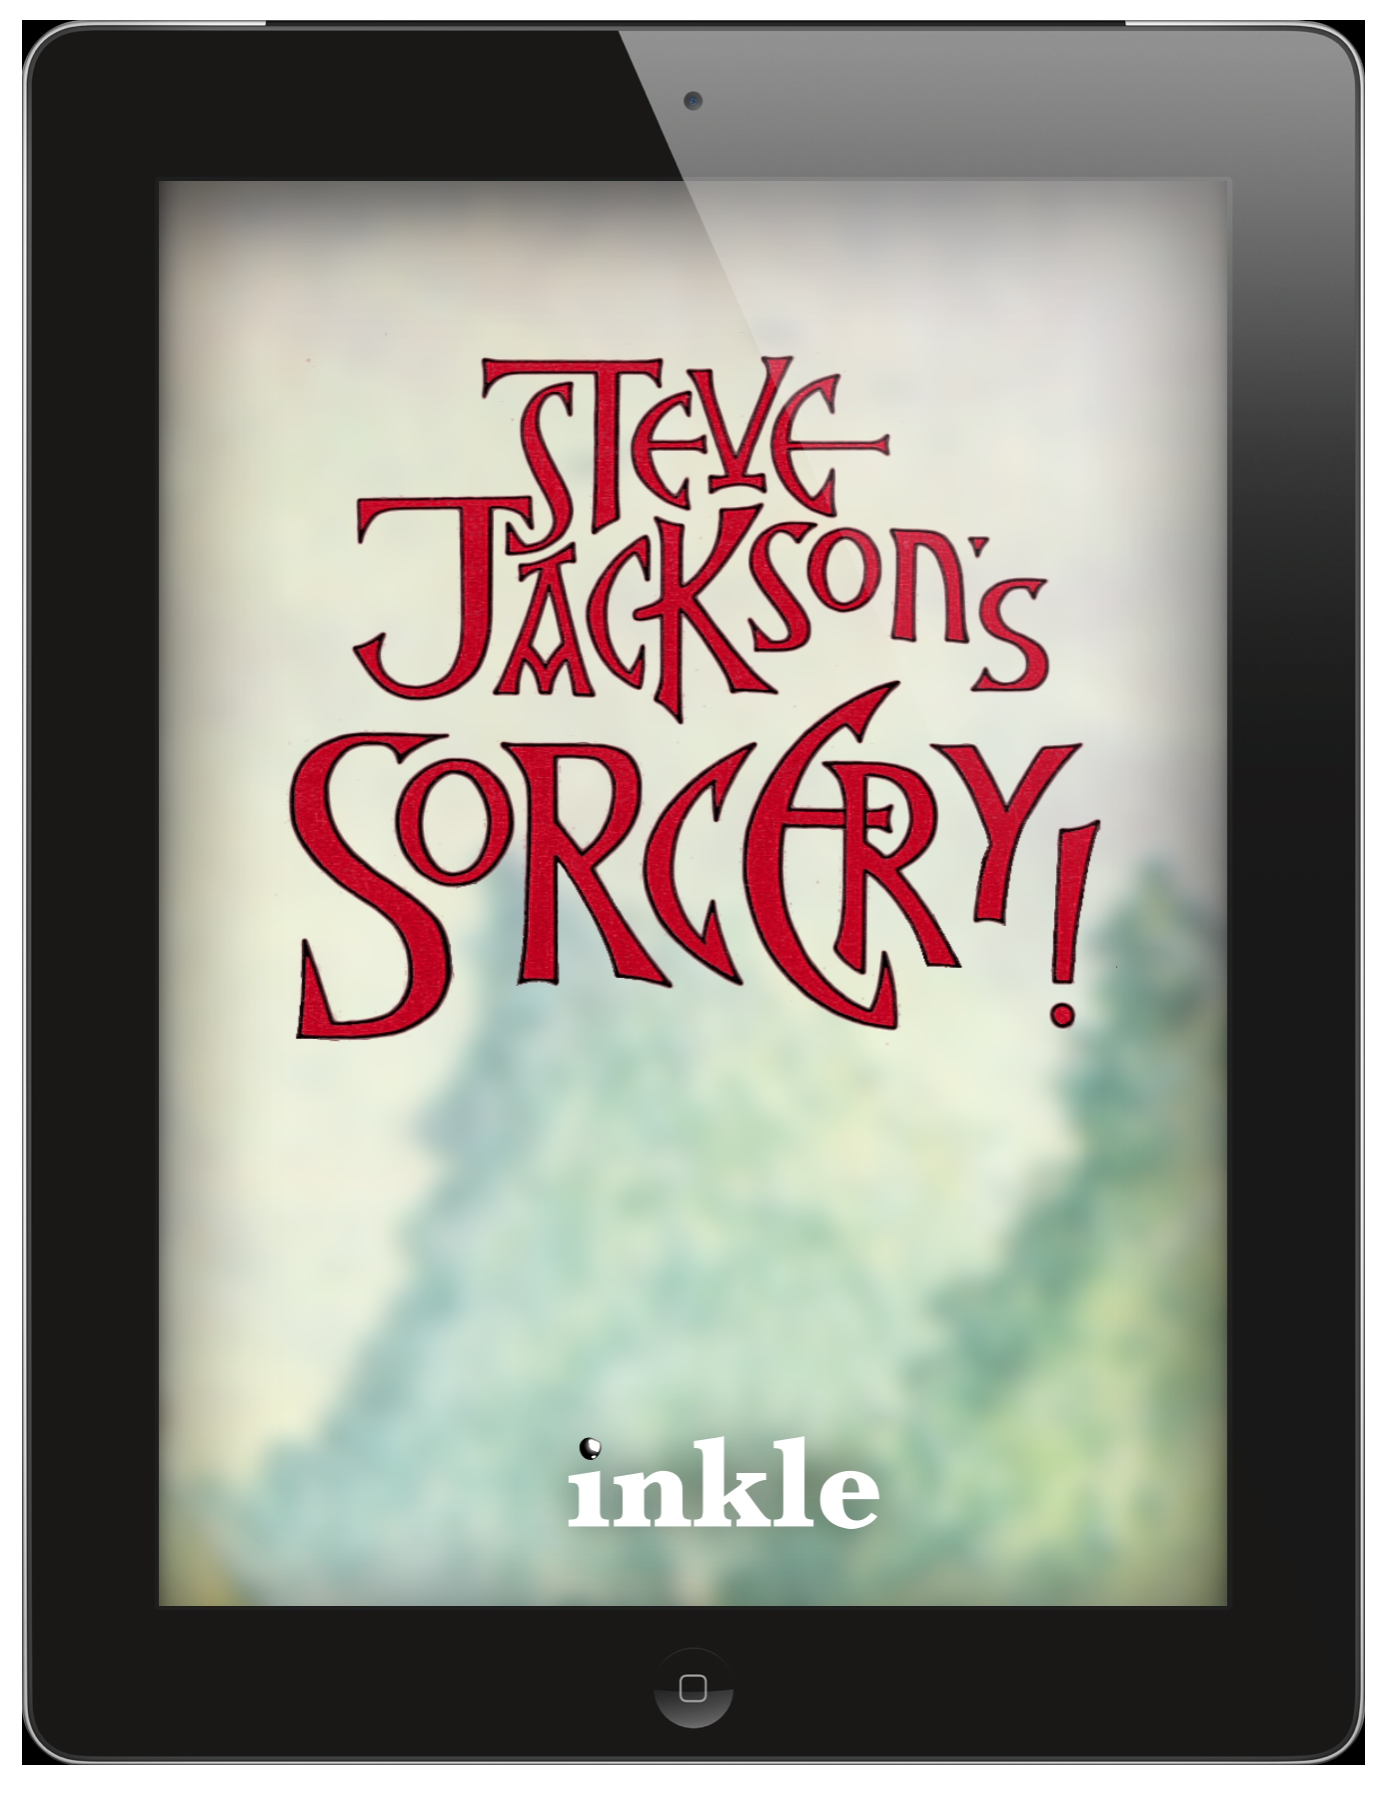 inkle Studios will bring Sorcery! gamebooks to life on iOS